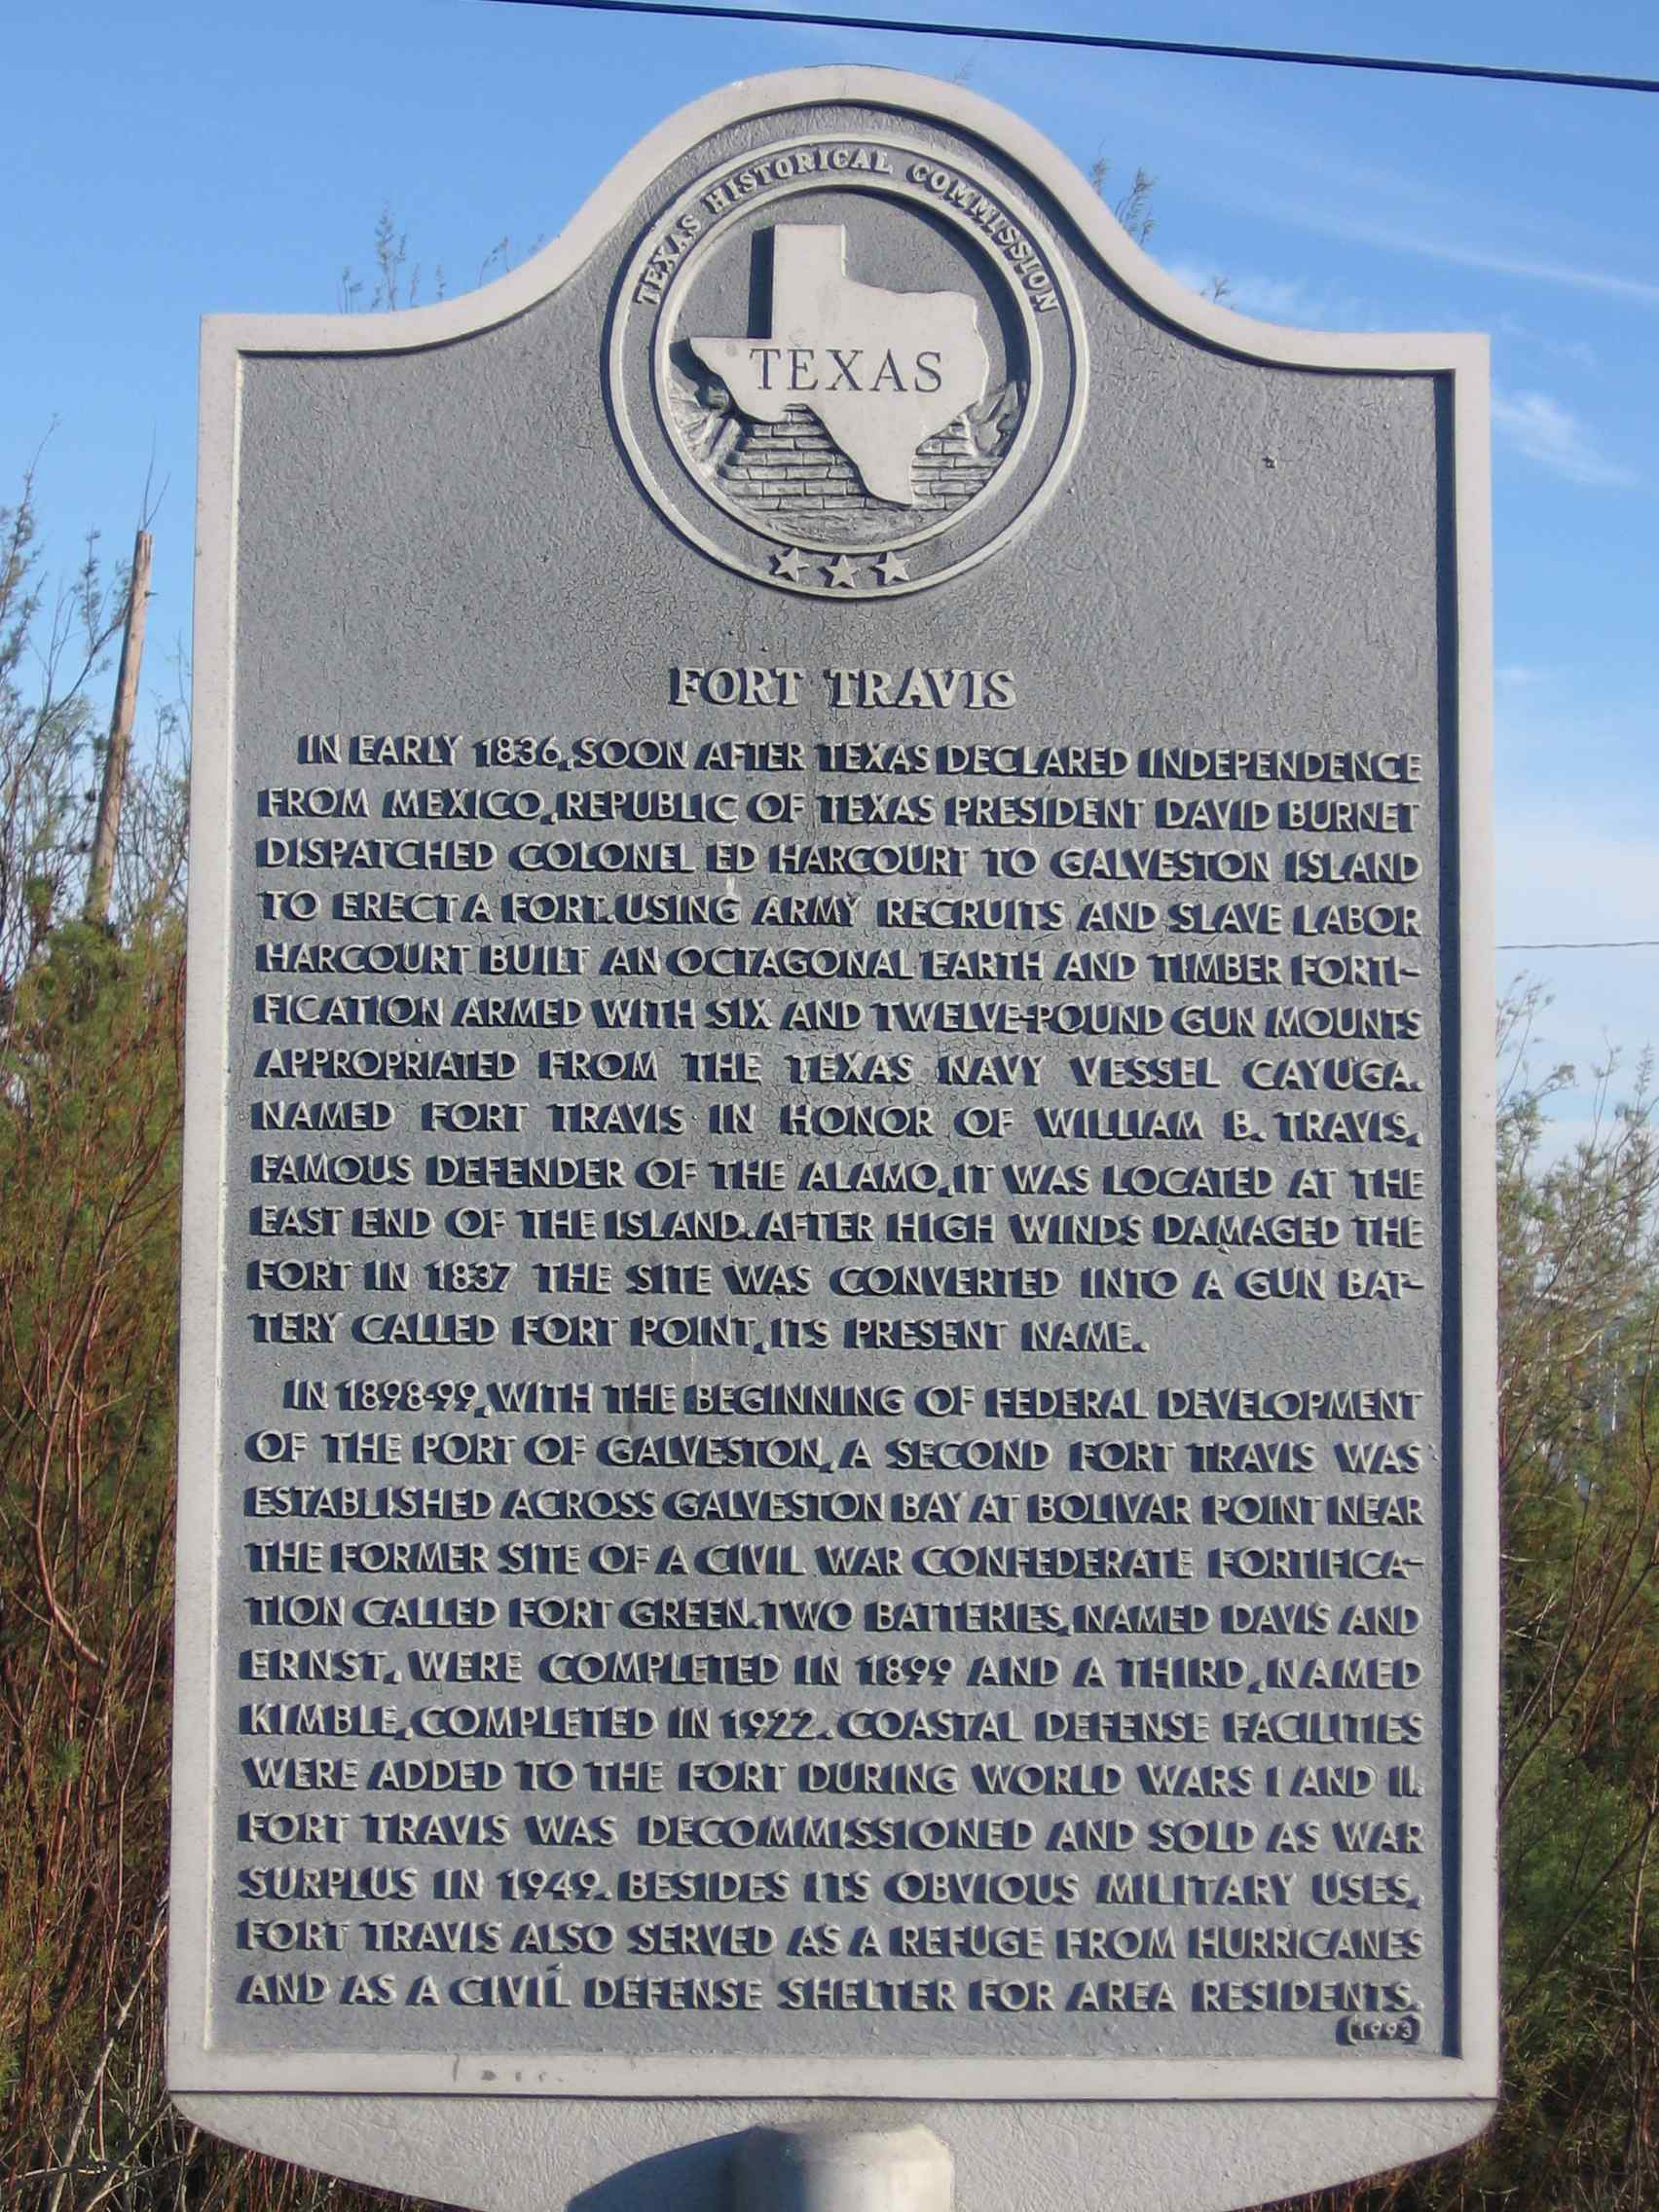 Historical Marker for Fort Travis, located in Fort Travis Seashore Park.